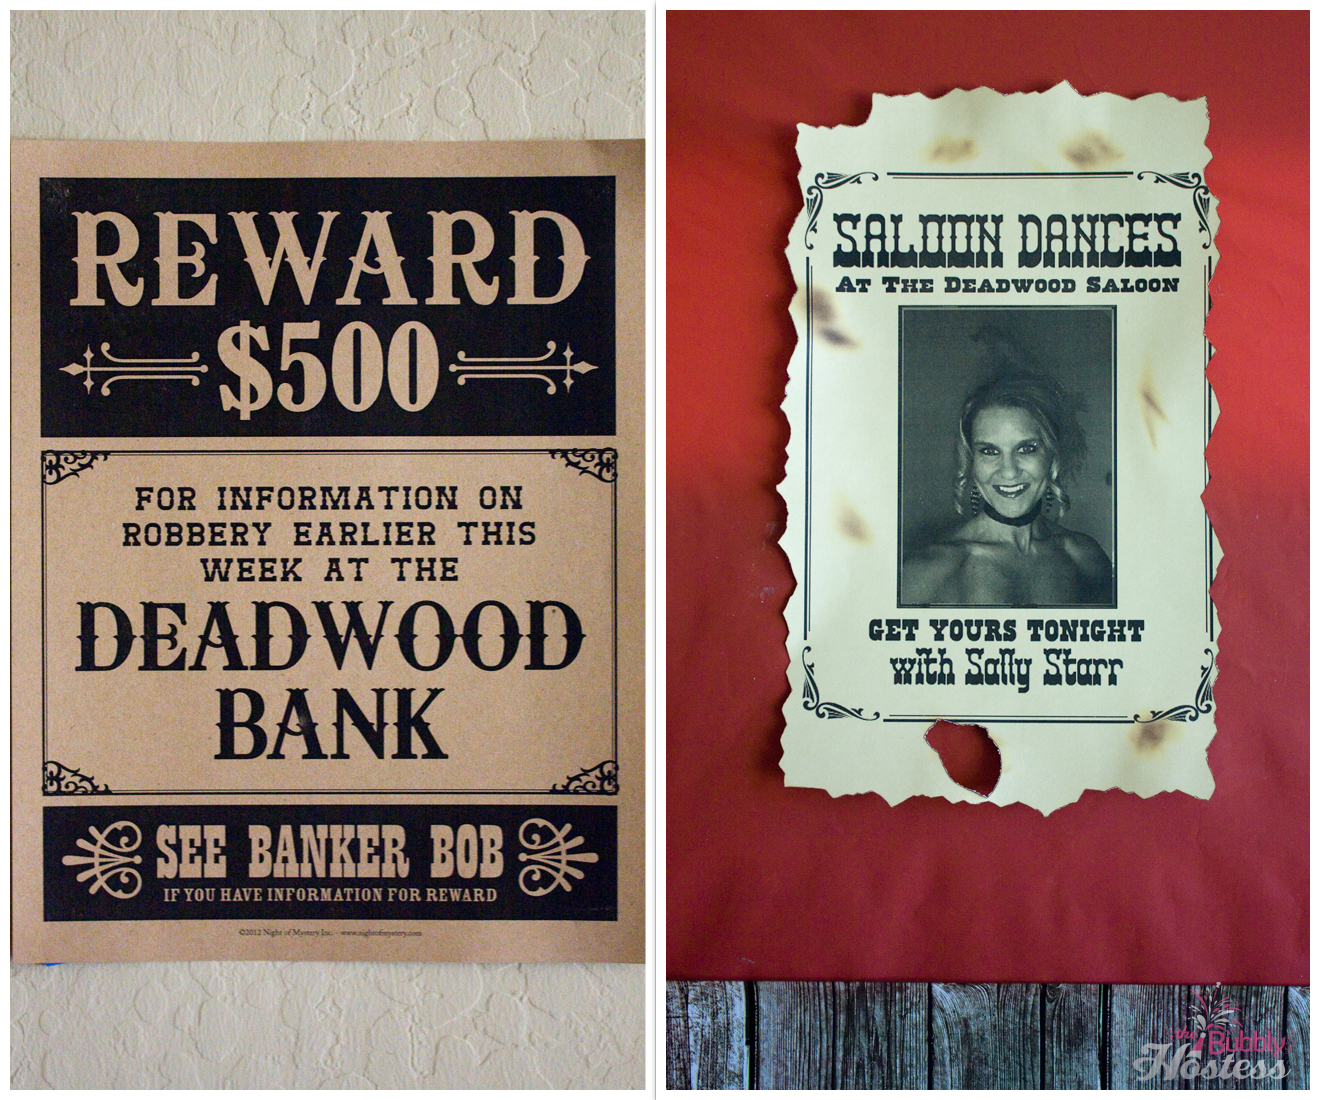 Murder At The Deadwood Saloon - A Murder Mystery Party Old West Décor | The Bubbly Hostess